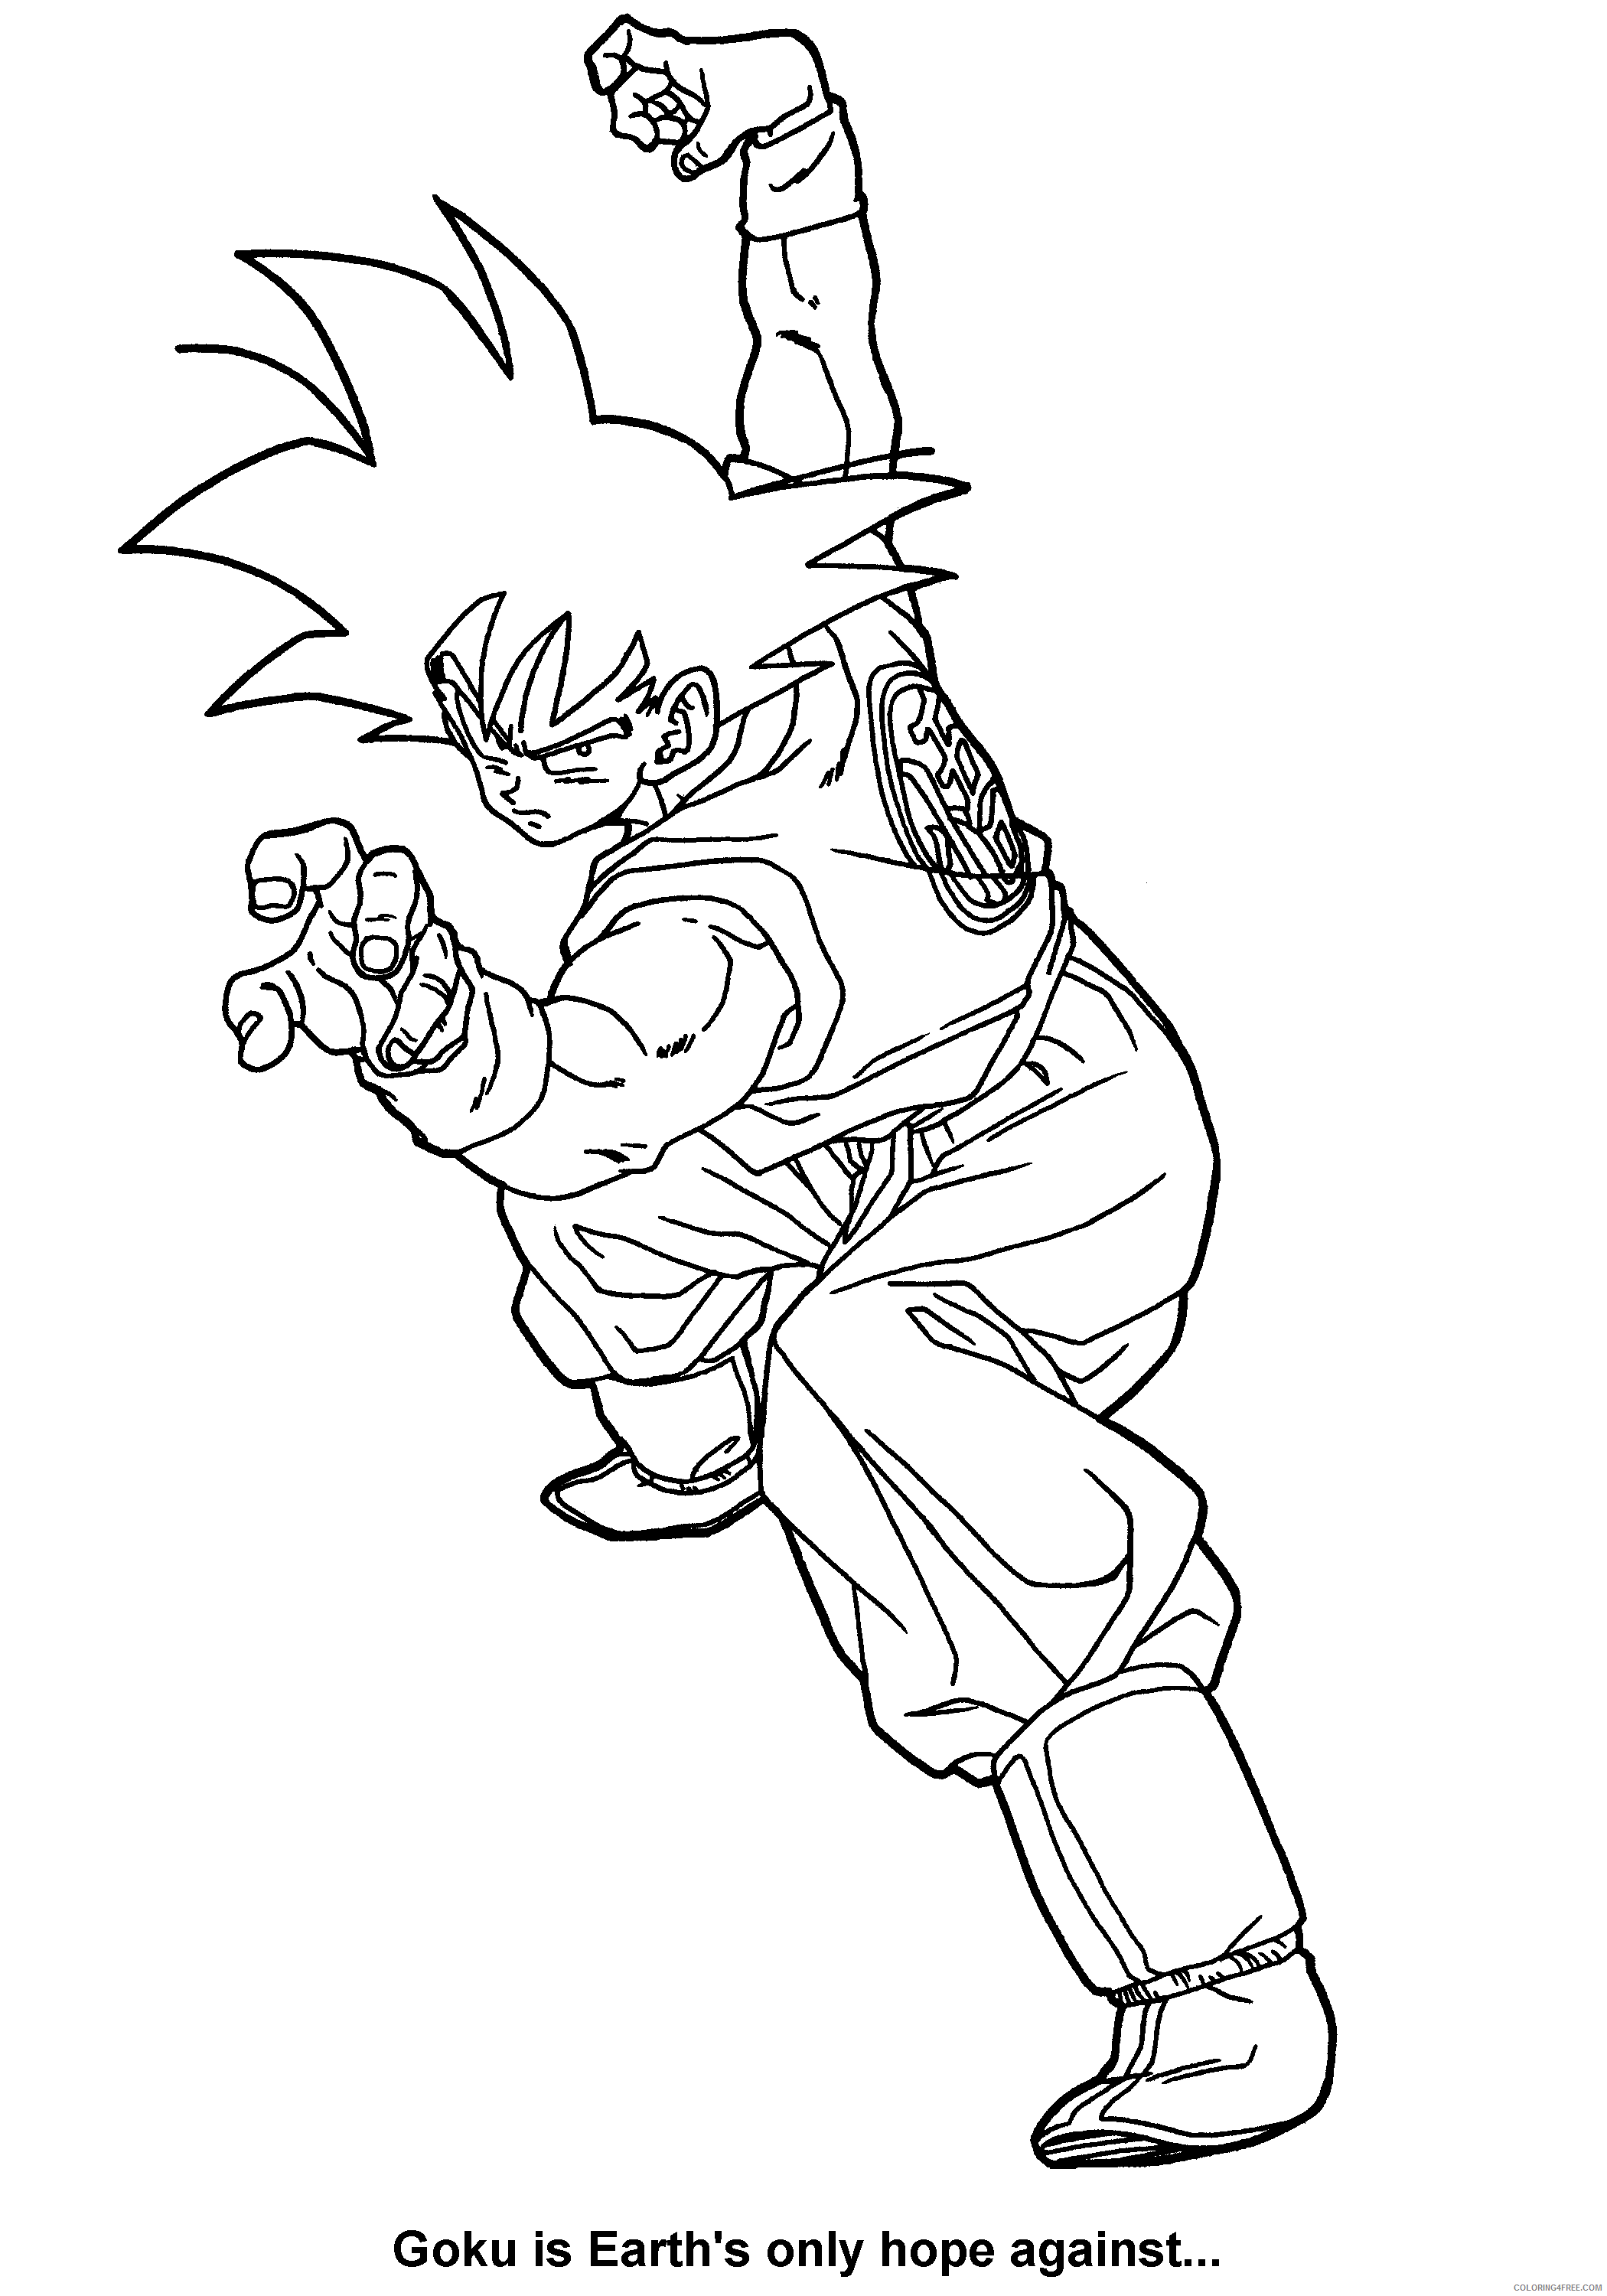 085 dragon ball z goku is earths only hope against Printable Coloring4free